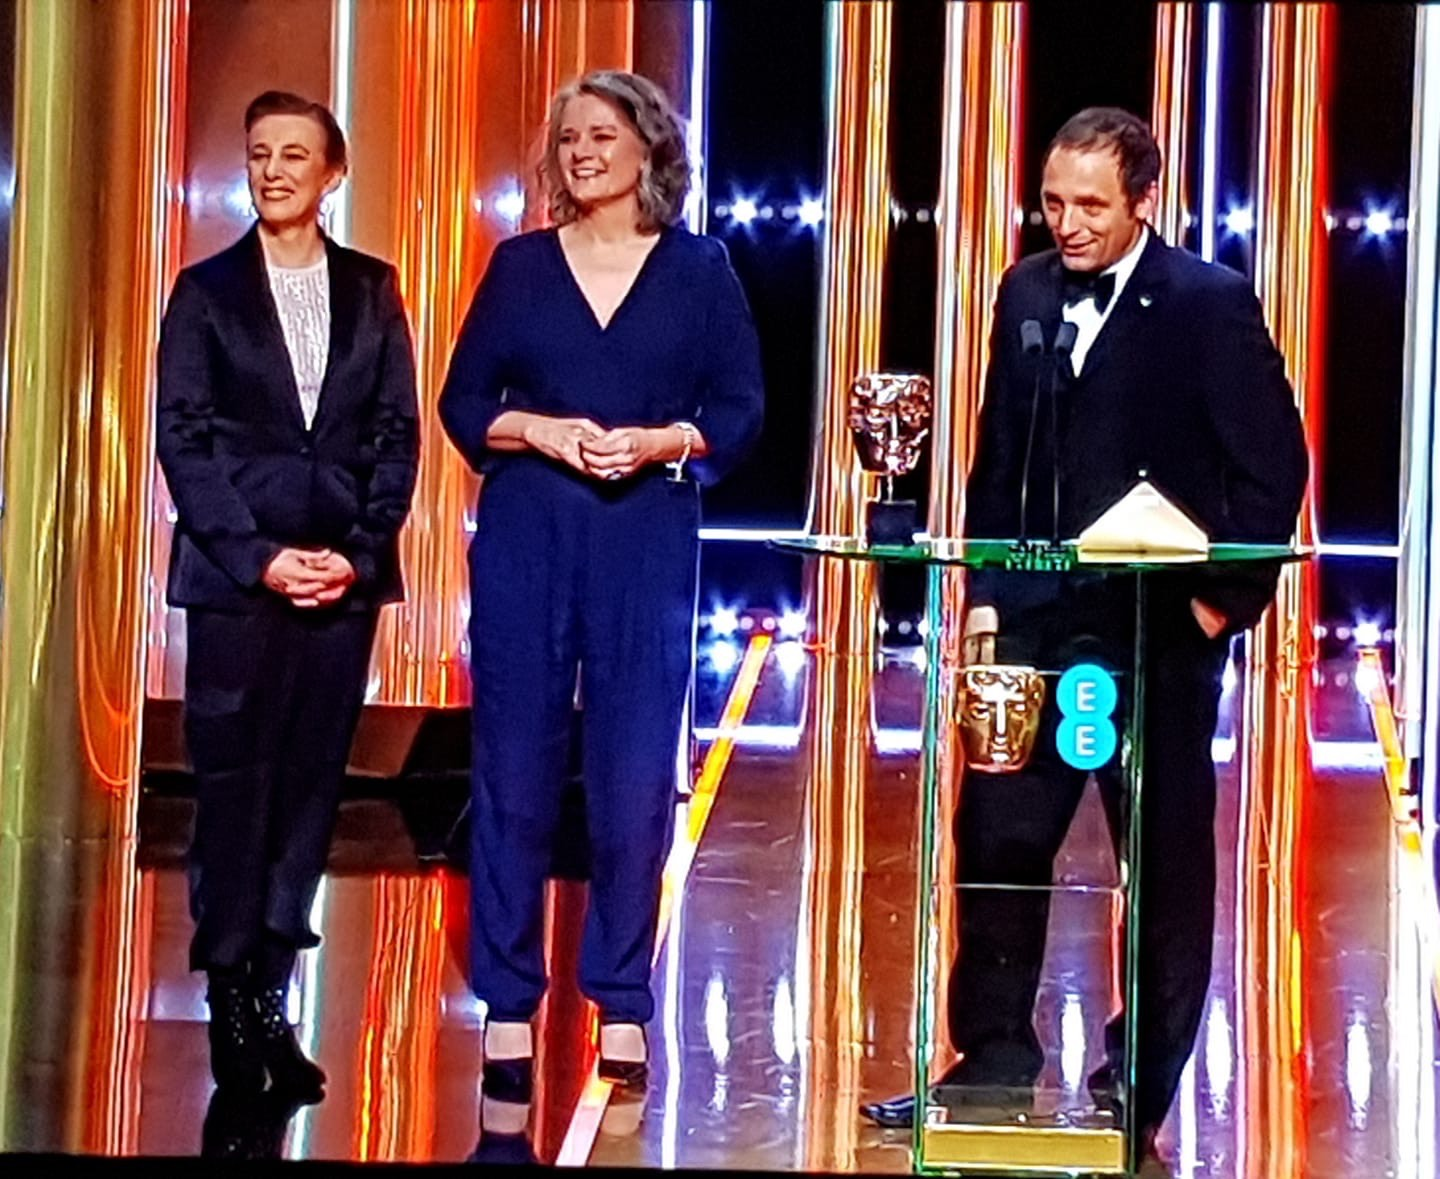 From Bristol to the Baftas for production team